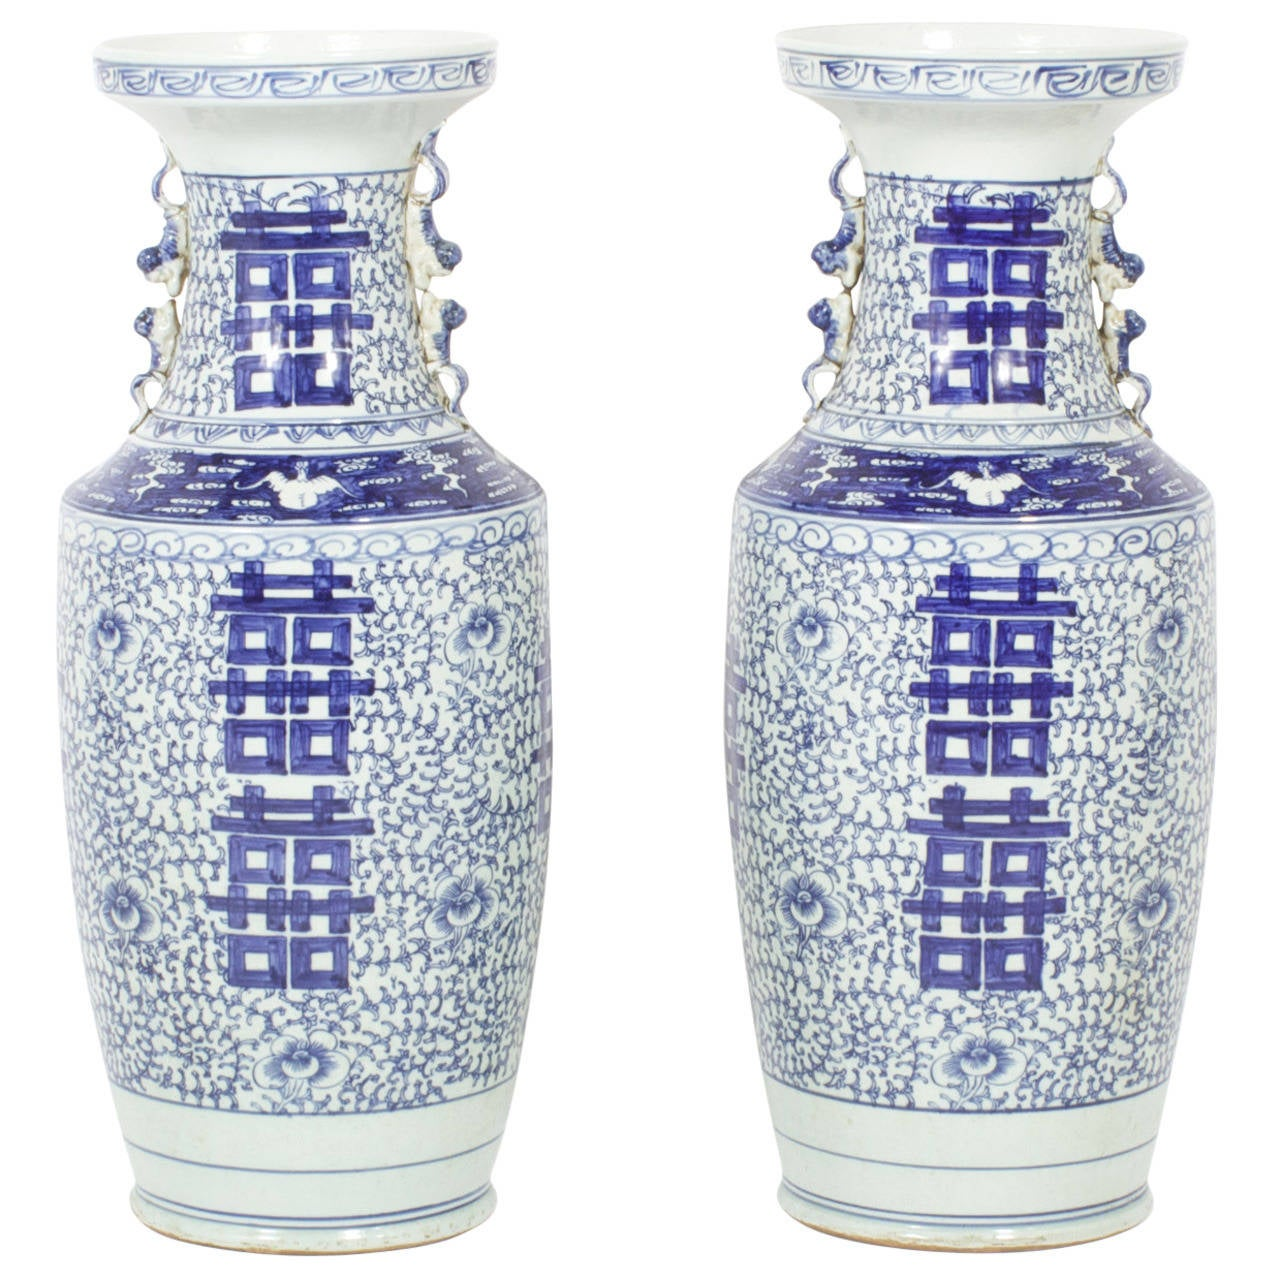 Pair Of Large Blue And White Chinese Porcelain Vases For